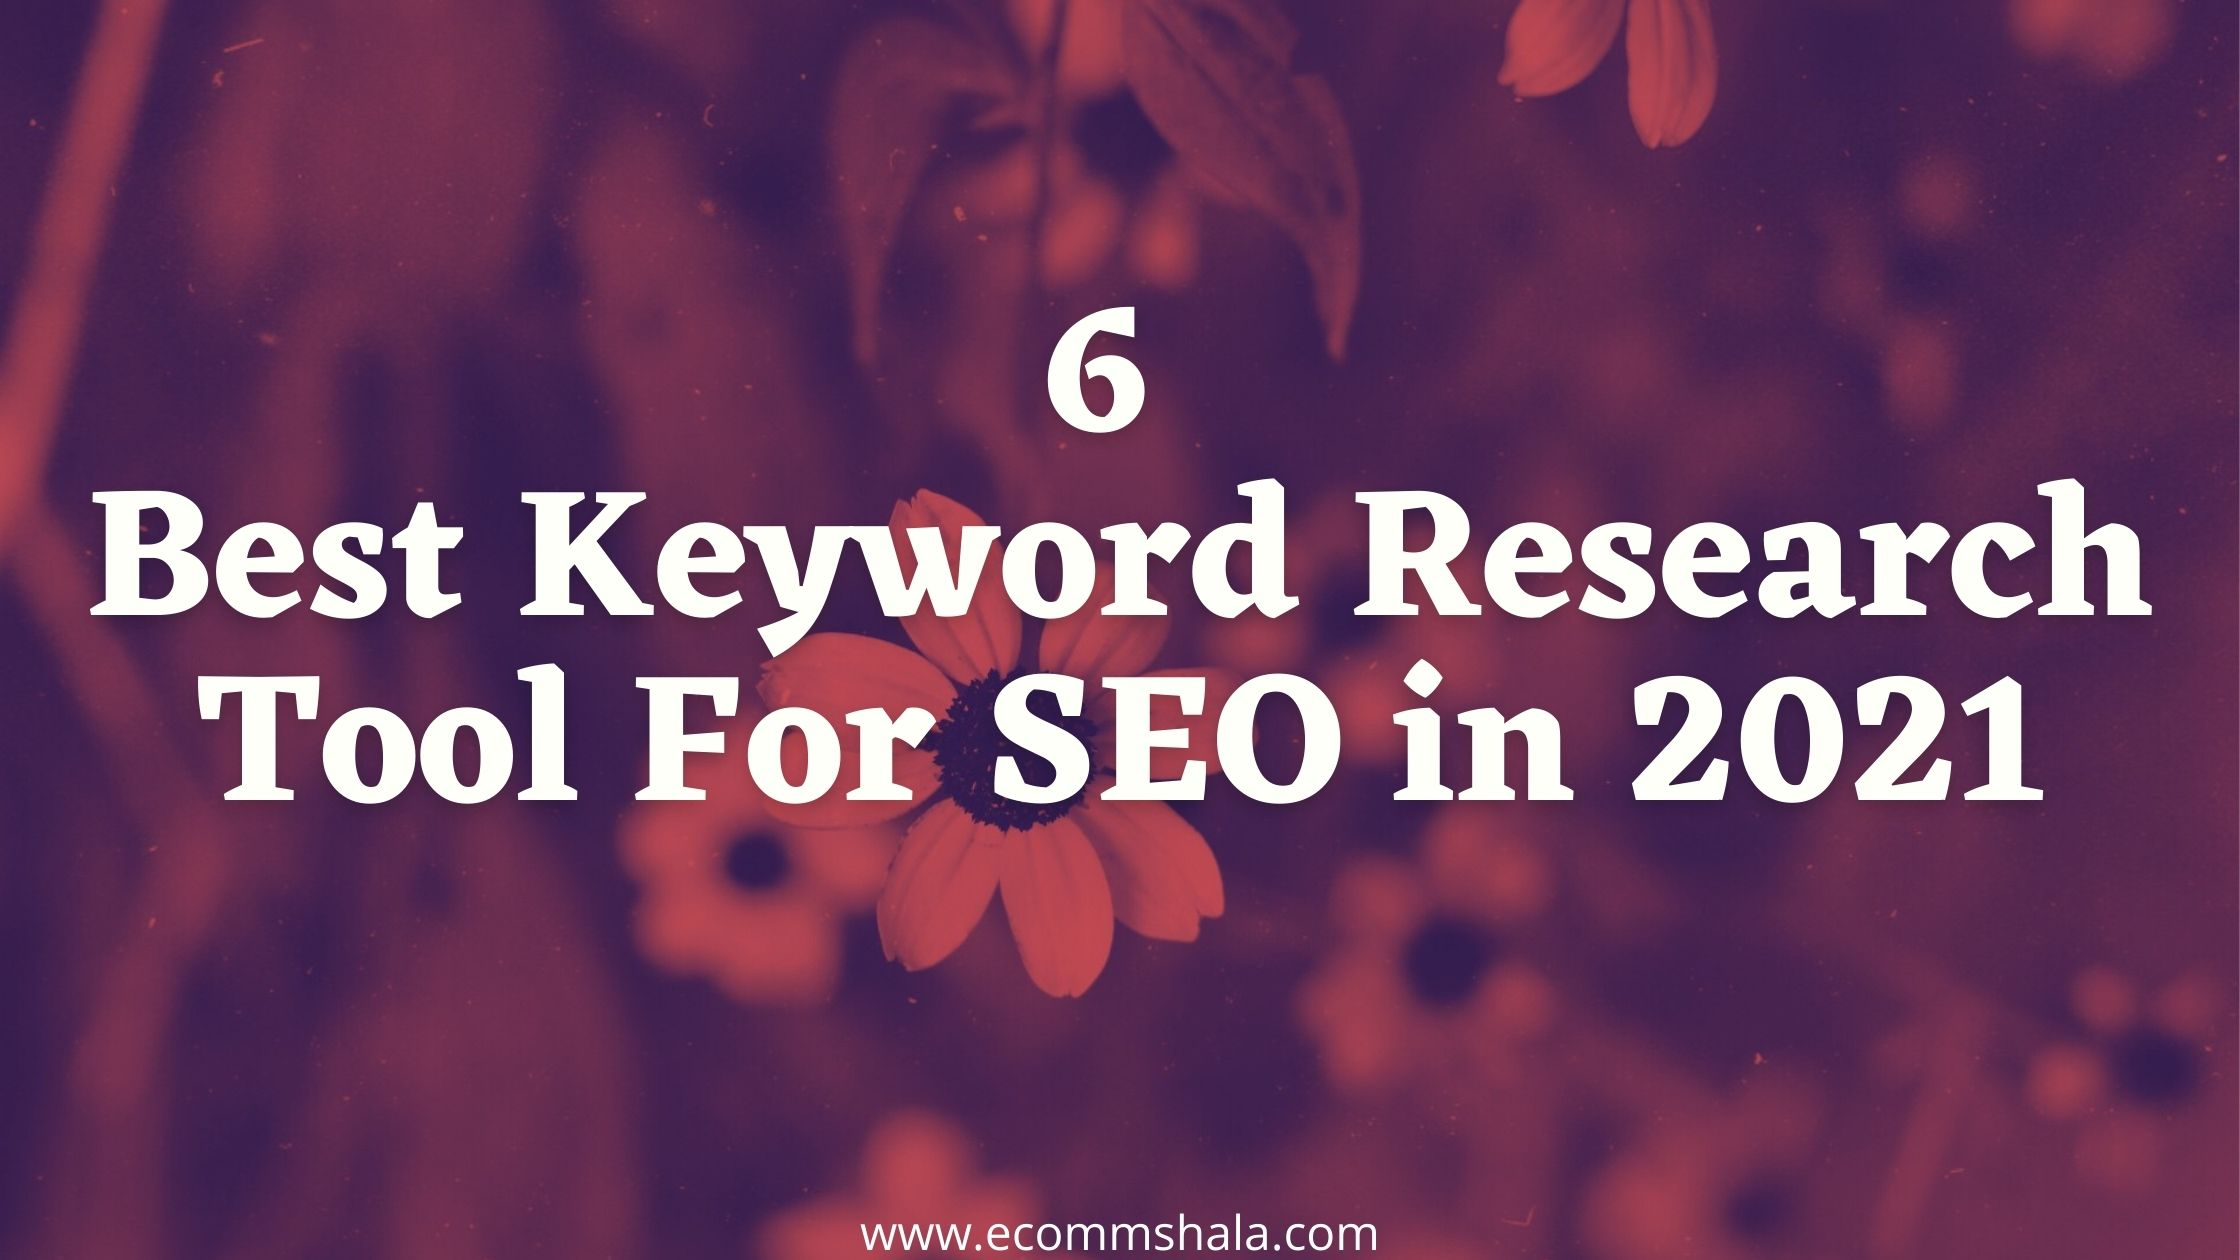 6 Best Keyword Research Tool For SEO in 2021